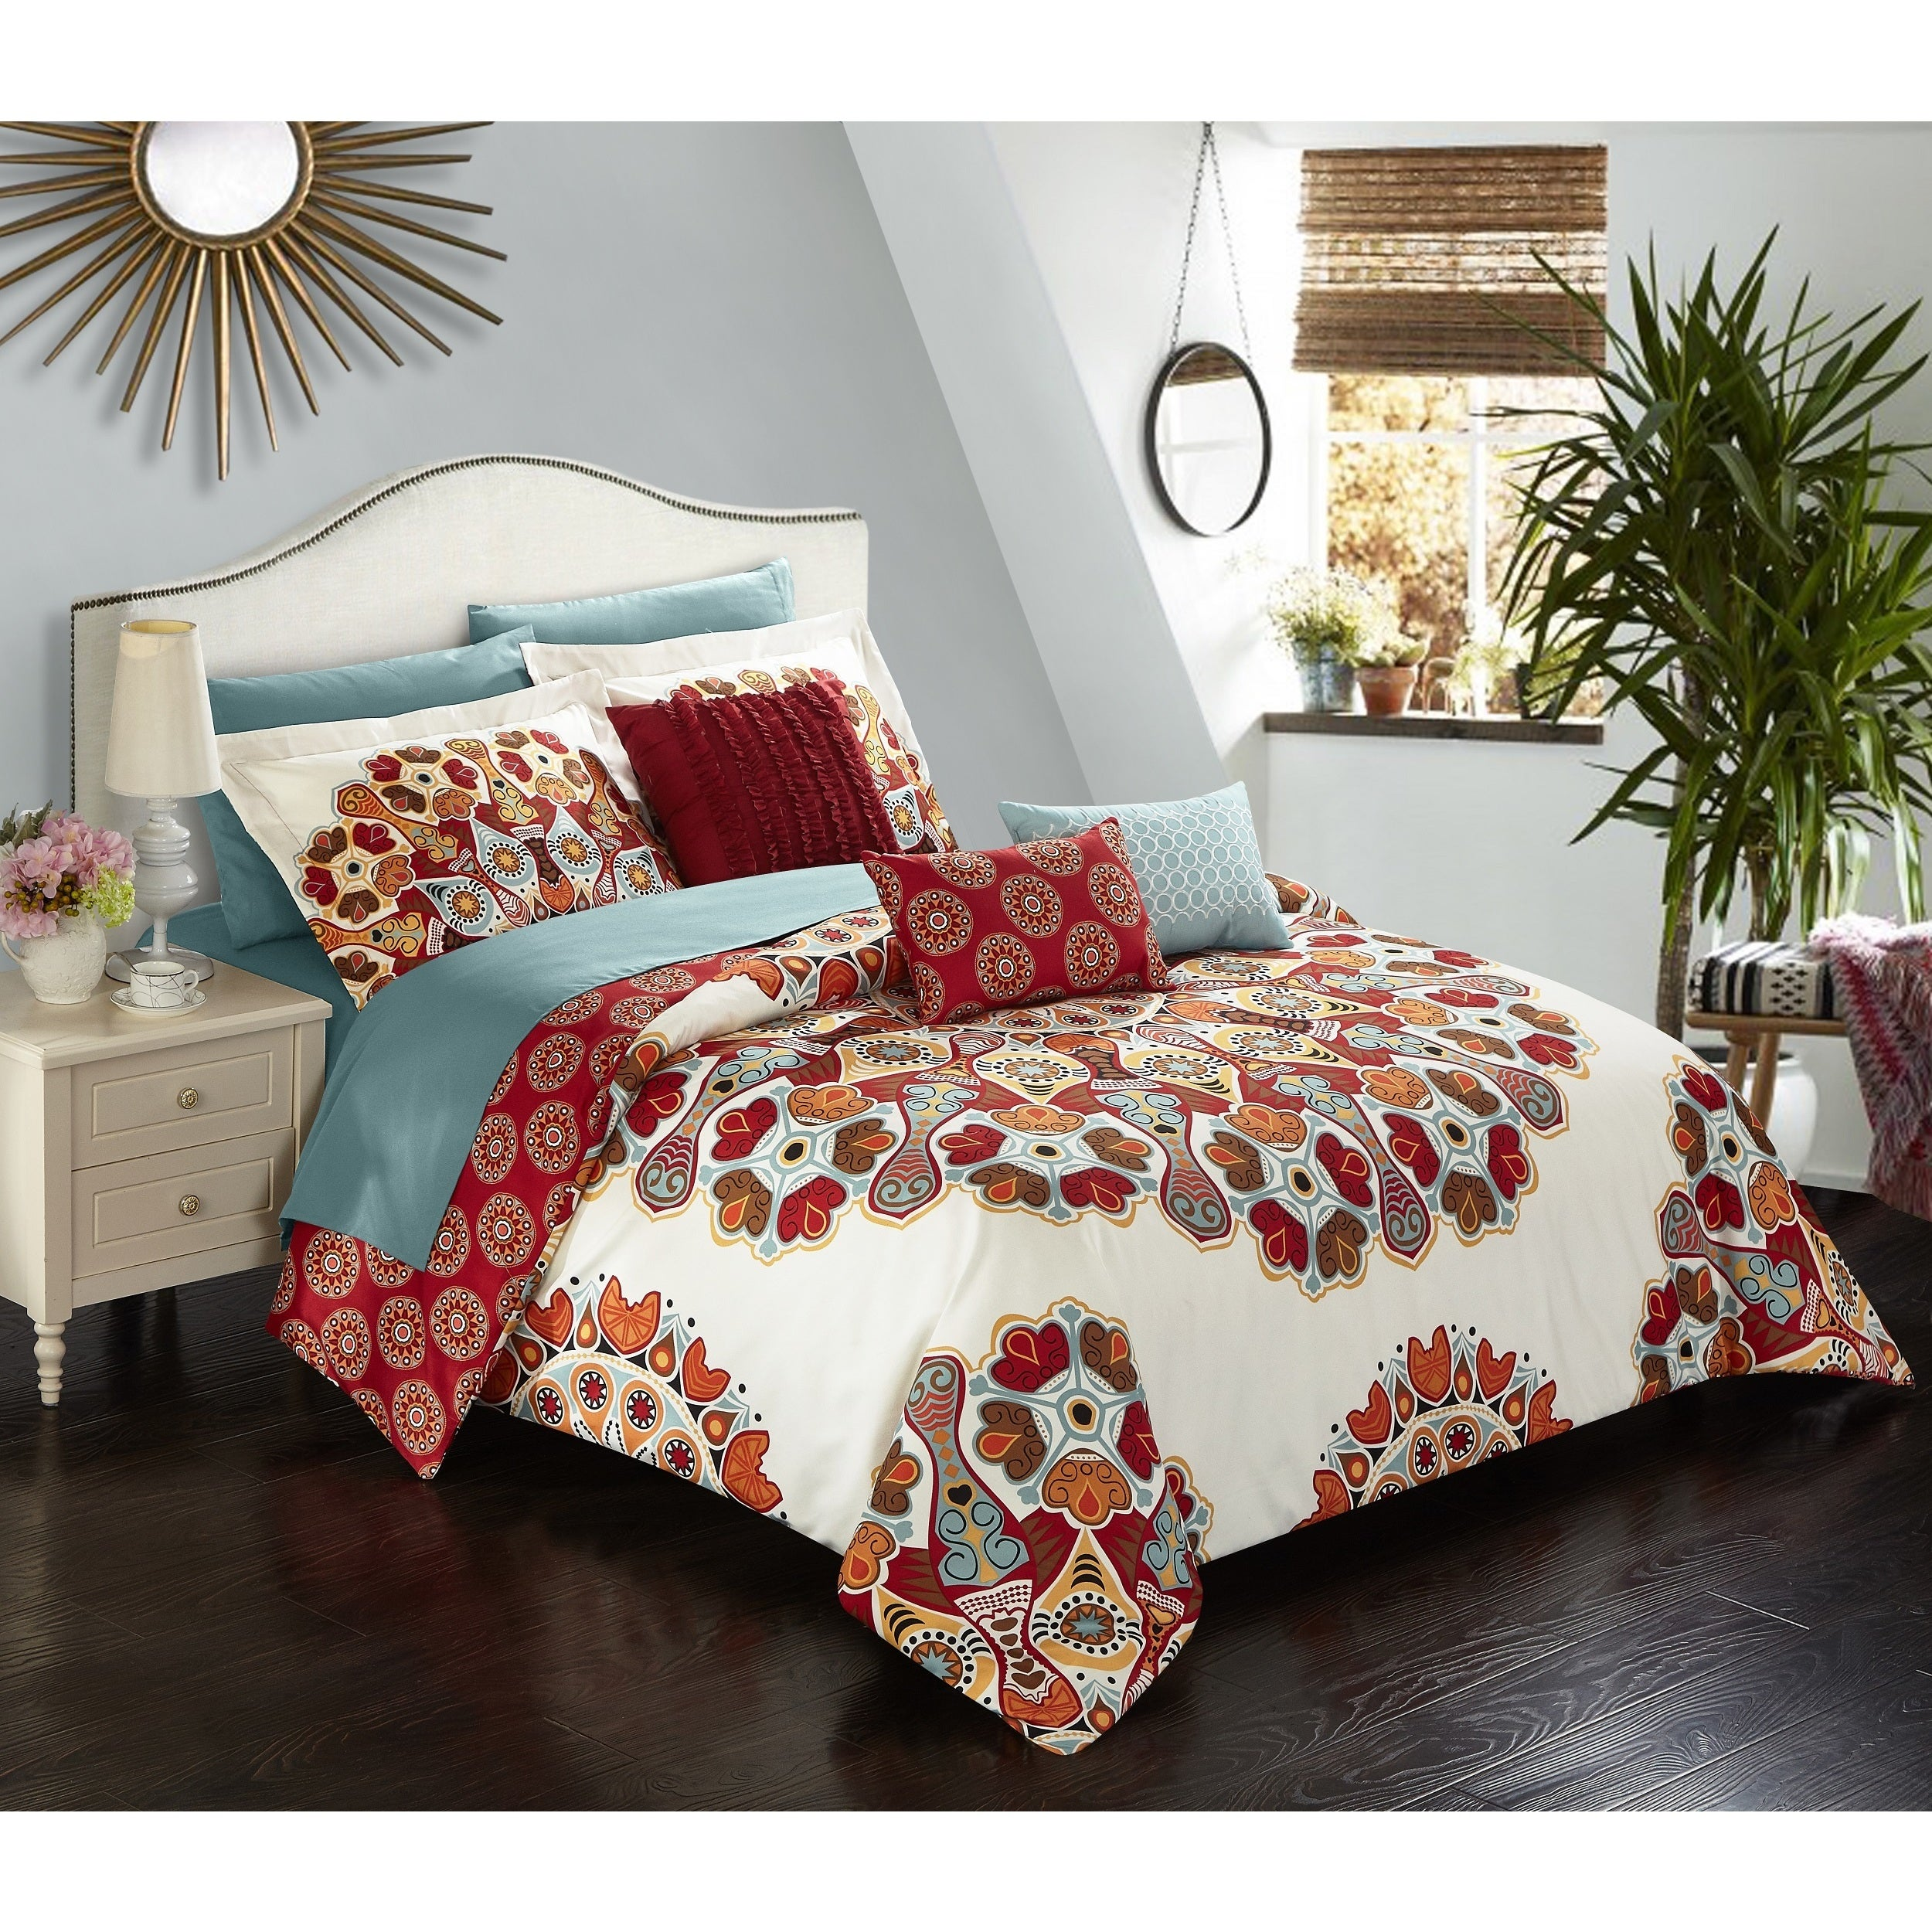 Bed-in-a-Bag | Find Great Fashion Bedding Deals Shopping at ... on